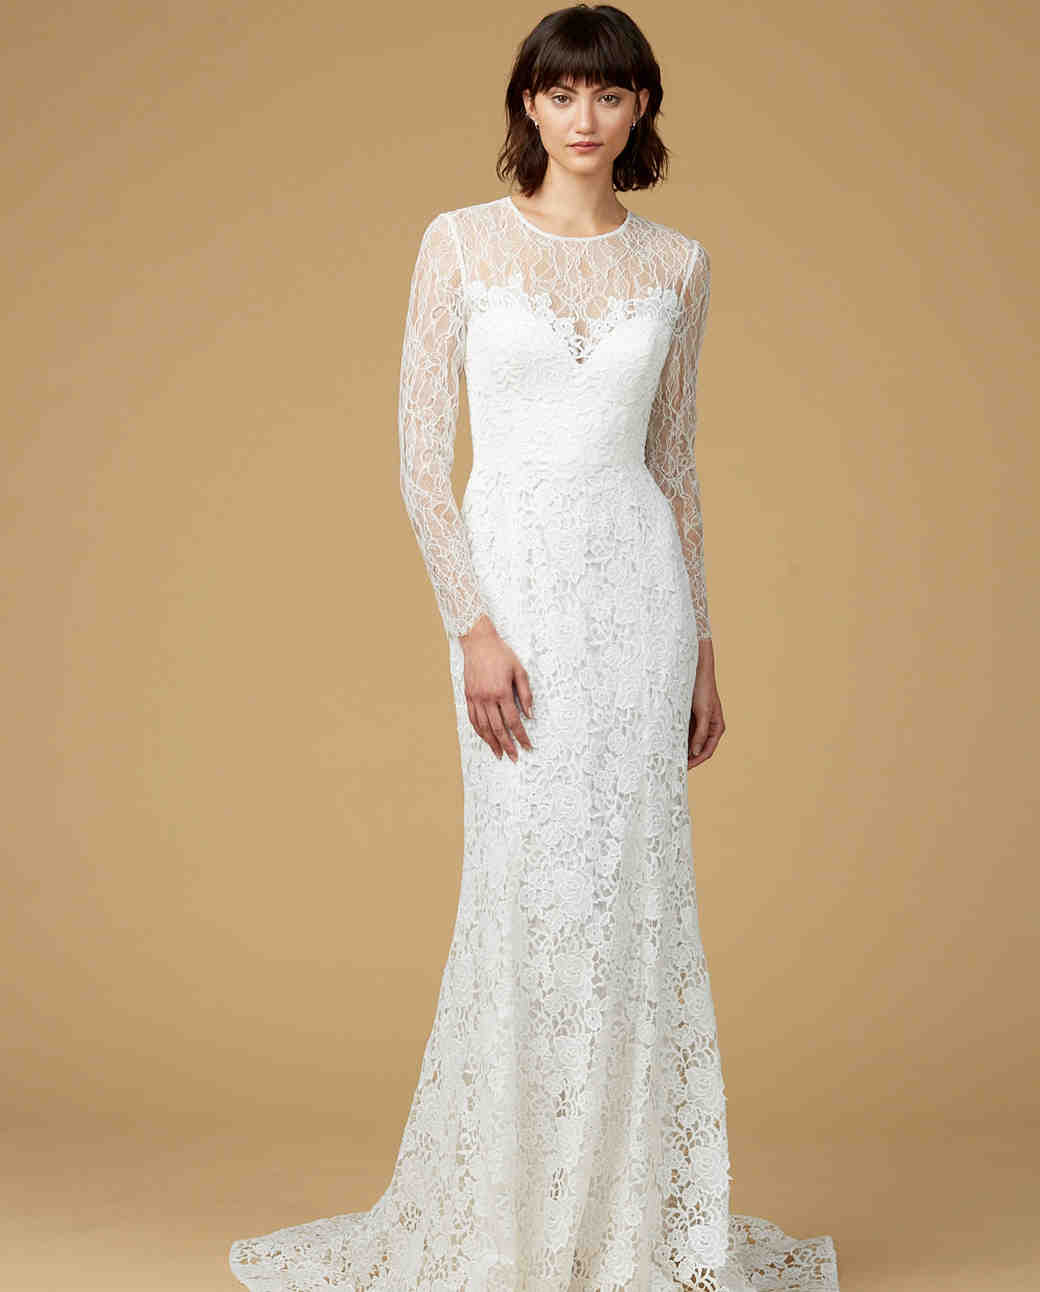 Amsale Nouvelle Fall 2017 Wedding Dress Collection